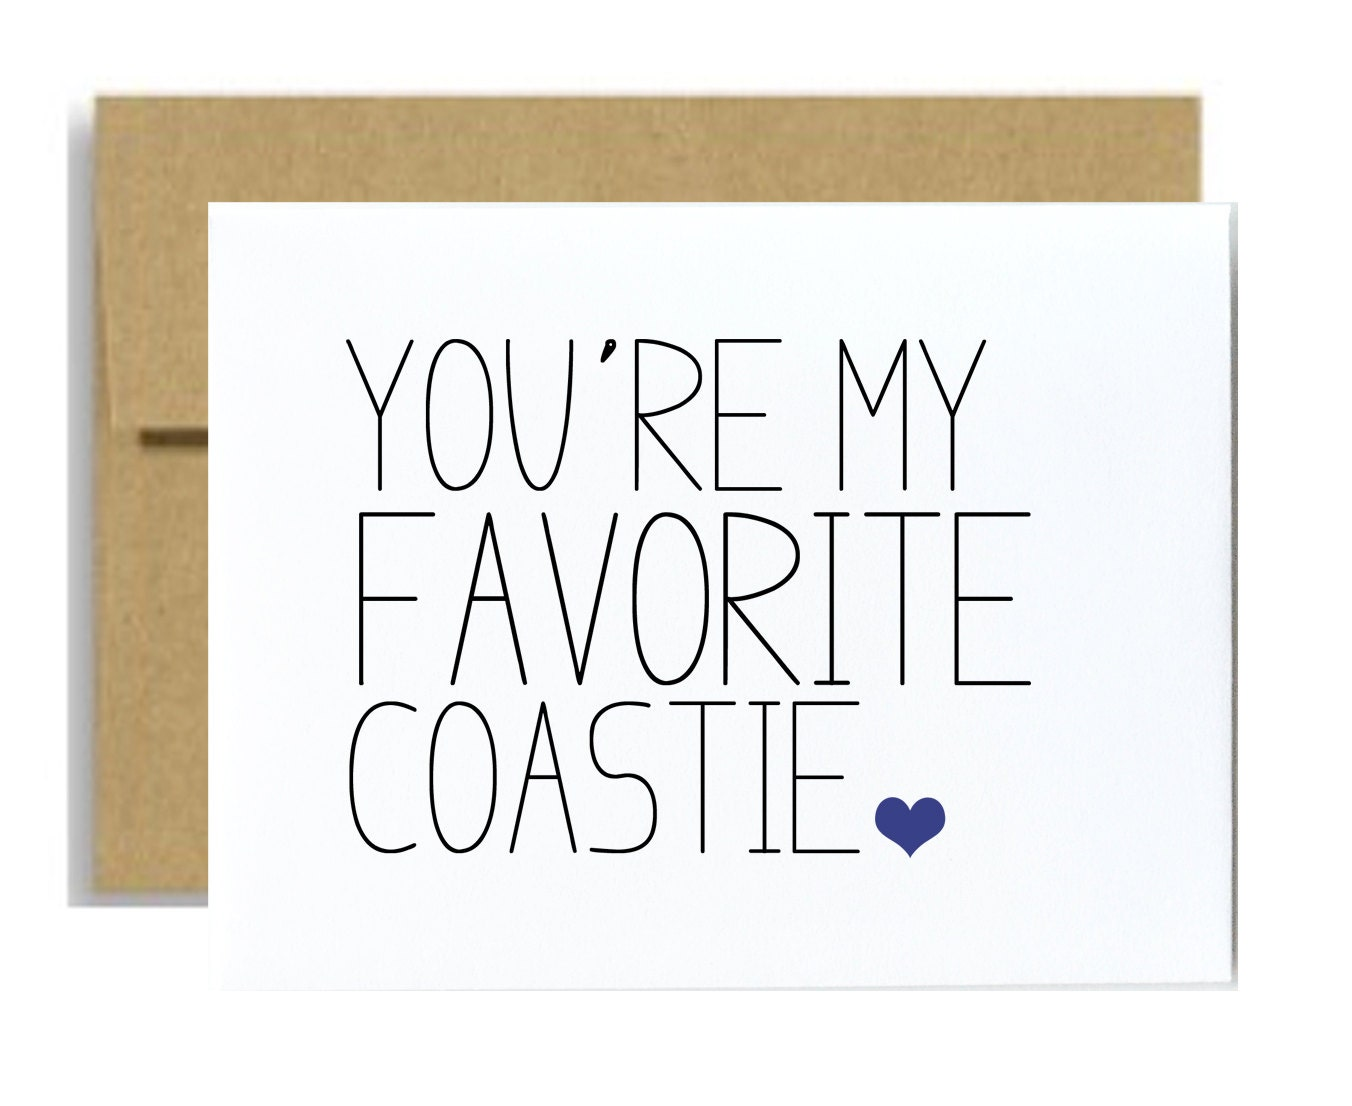 Coast guard greeting card you are my favorite coastie zoom magicingreecefo Image collections